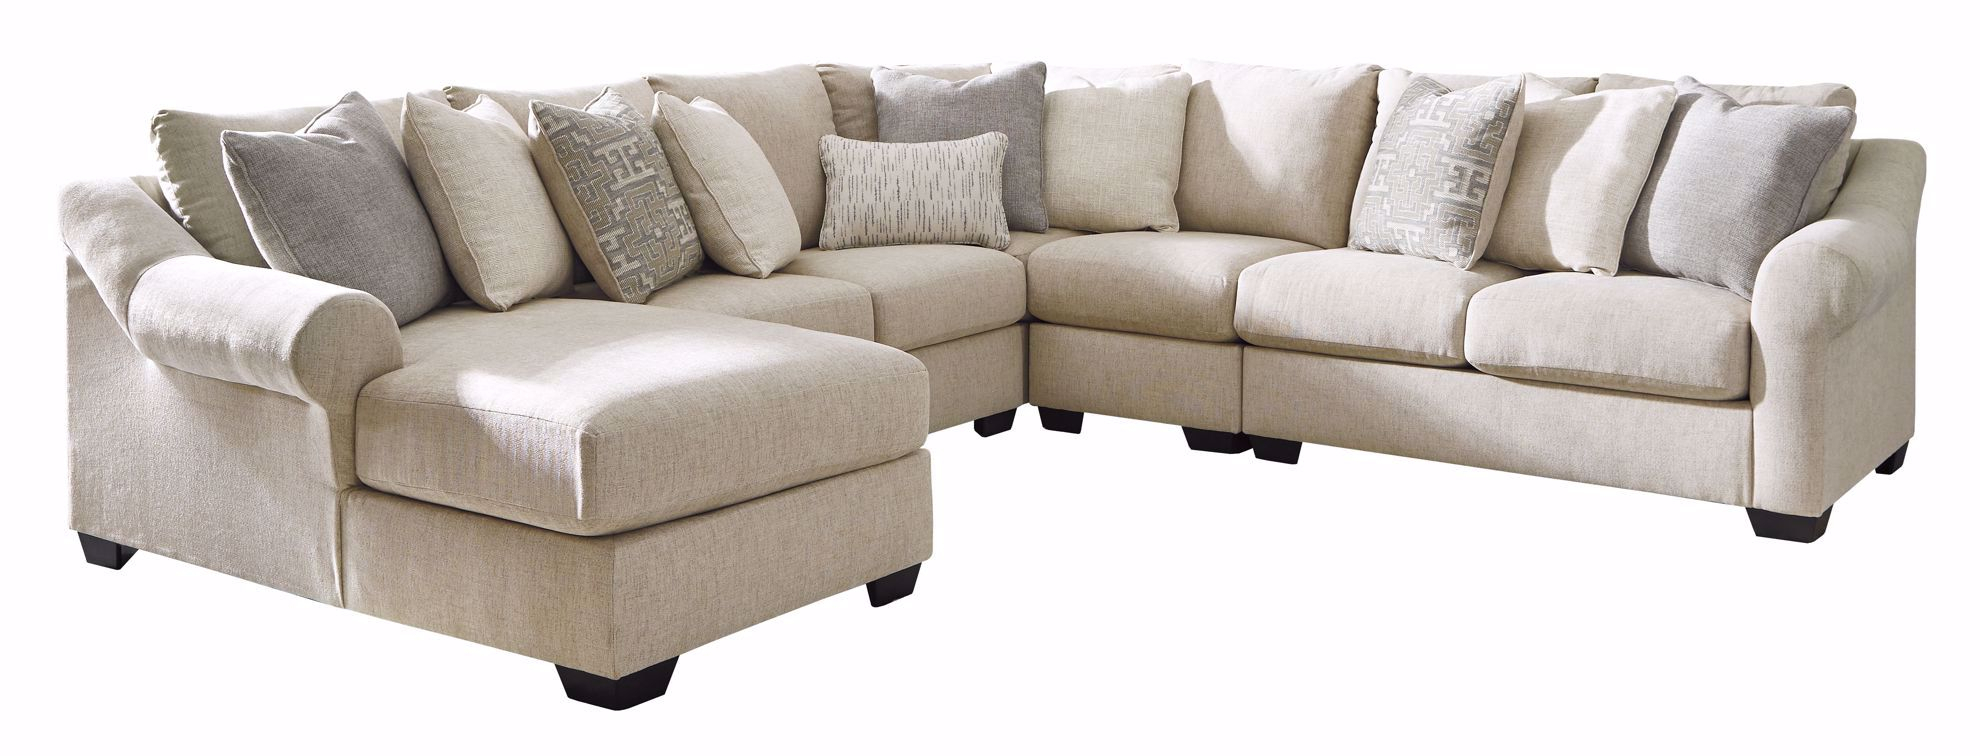 Carnaby Linen 4 Piece Sectional | The Furniture Mart Within Benton 4 Piece Sectionals (View 15 of 15)